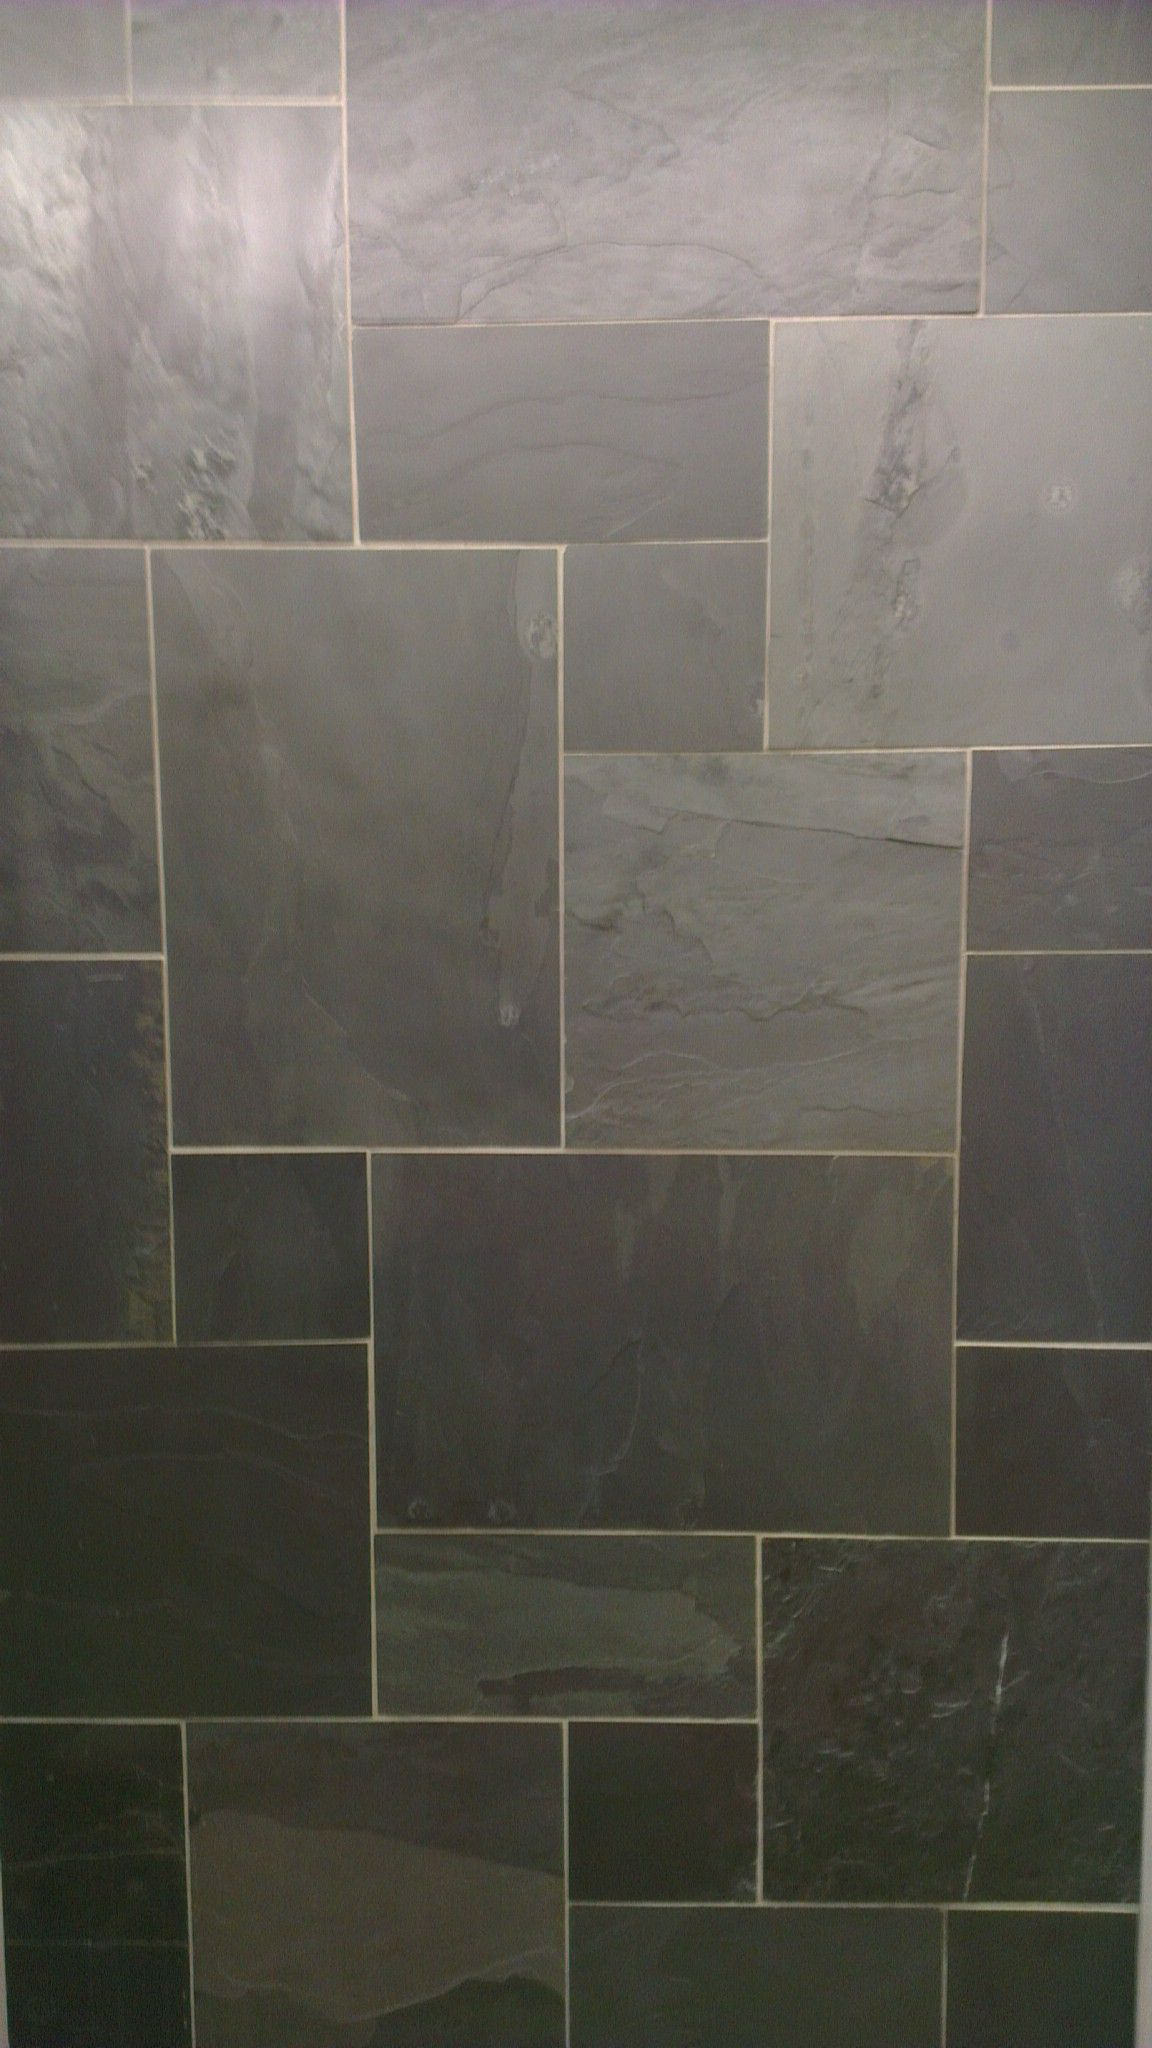 40 grey slate bathroom floor tiles ideas and pictures bathroom 40 grey slate bathroom floor tiles ideas and pictures bathroom remodel pinterest grey slate bathroom slate bathroom and tile ideas dailygadgetfo Image collections